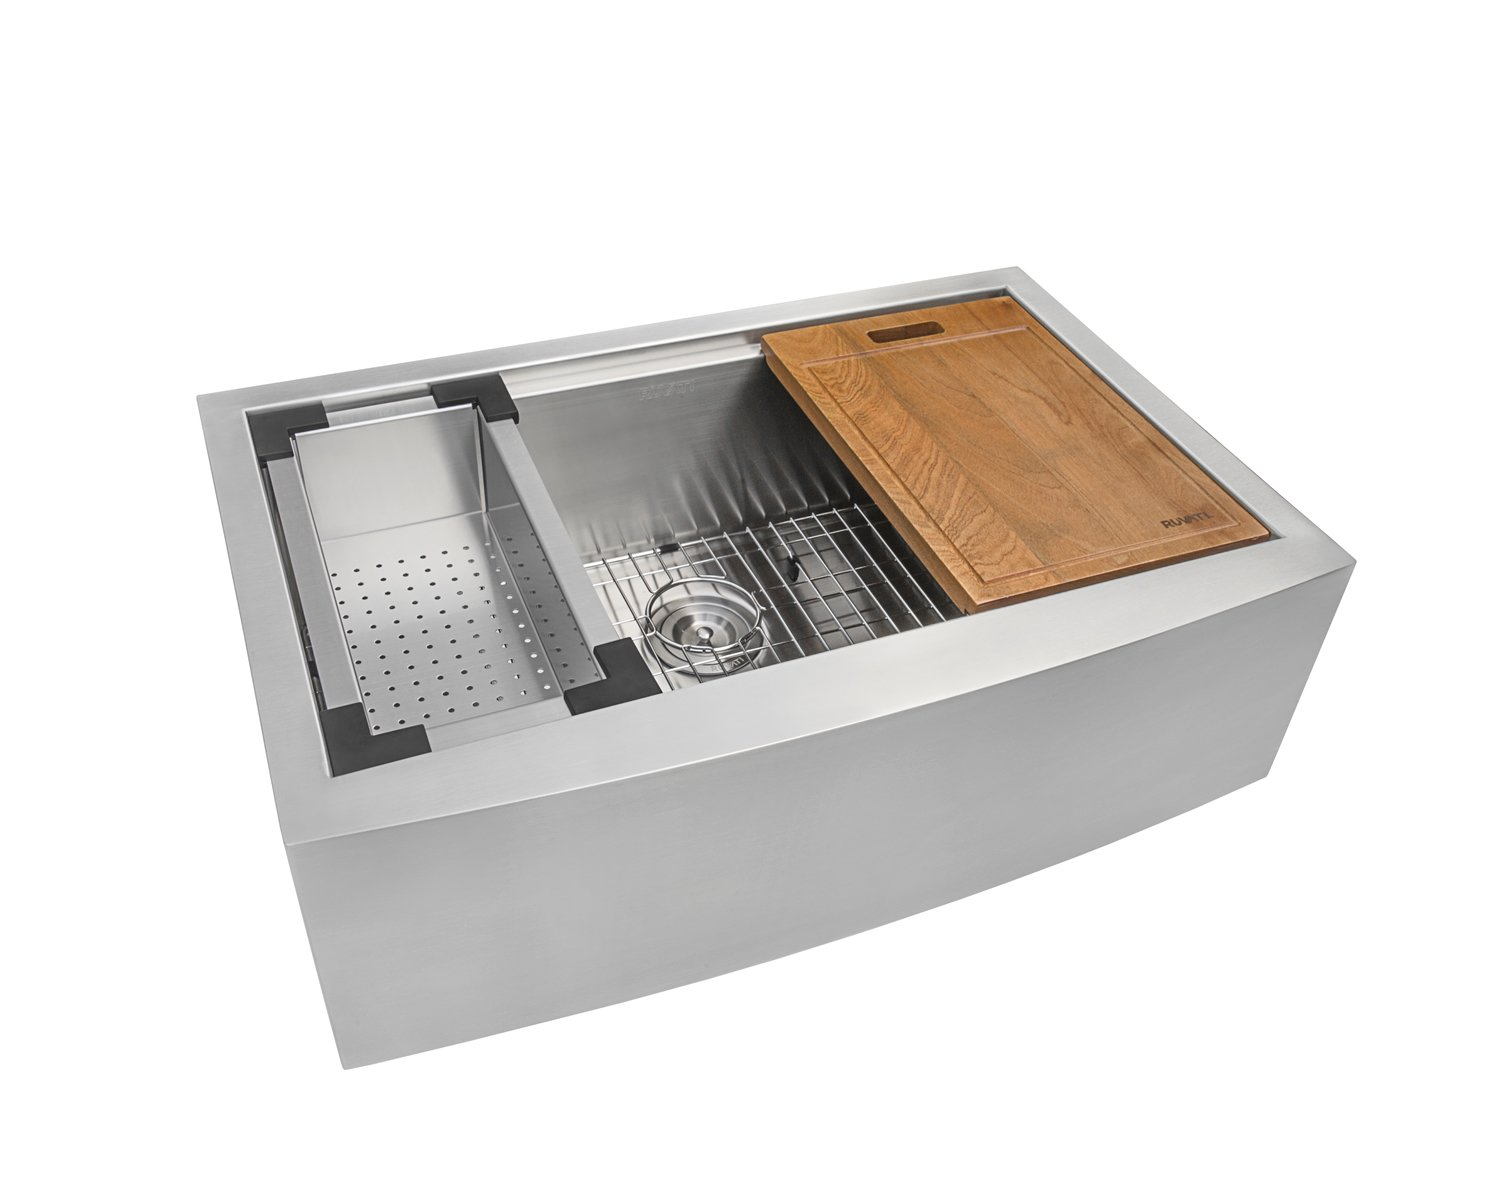 Ruvati RVH9200 Apron Front 16 Gauge 33'' Kitchen Single Bowl Sink, Stainless Steel